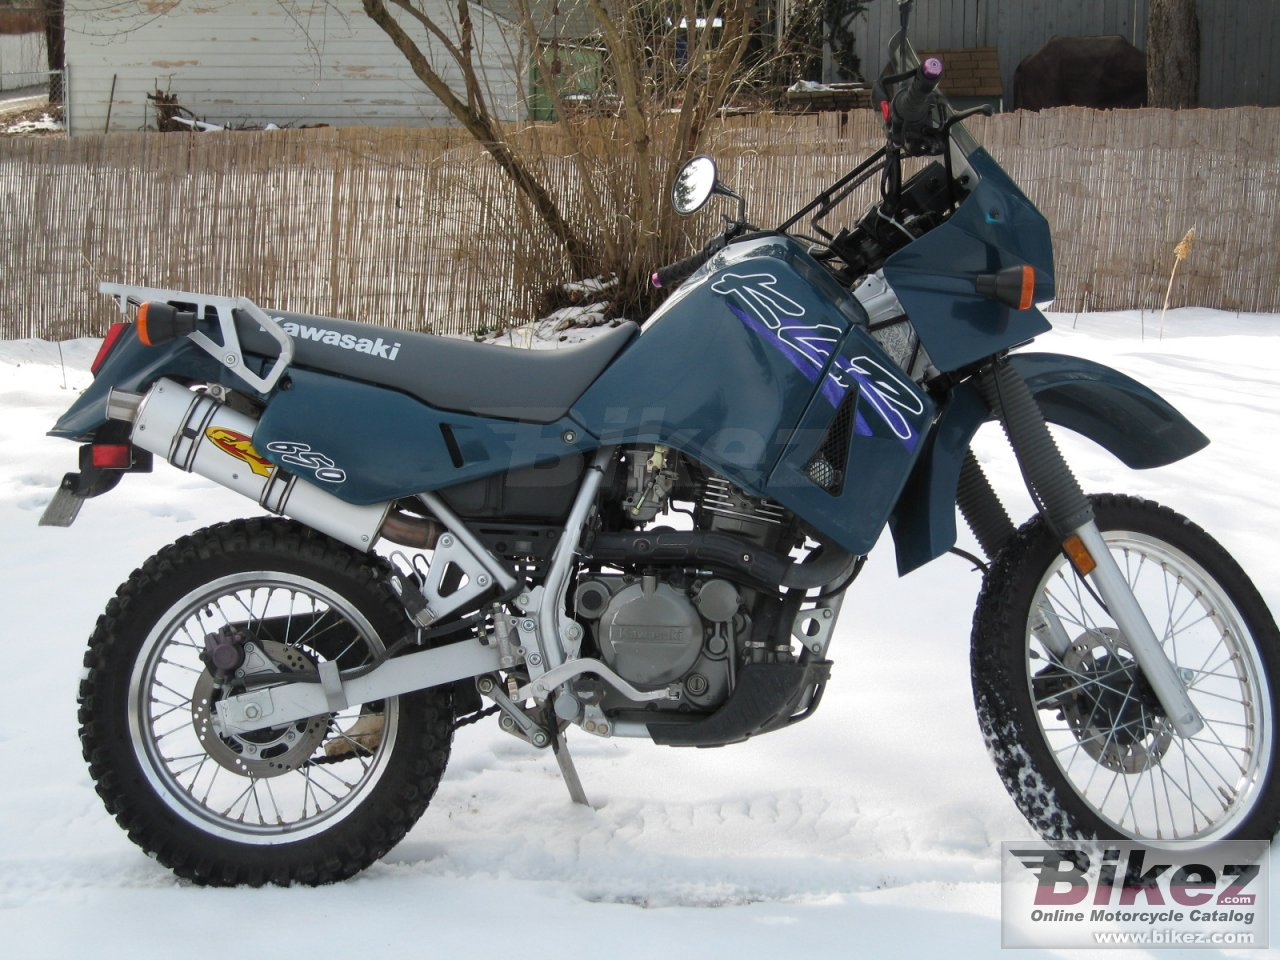 Big  klr 650 picture and wallpaper from Bikez.com